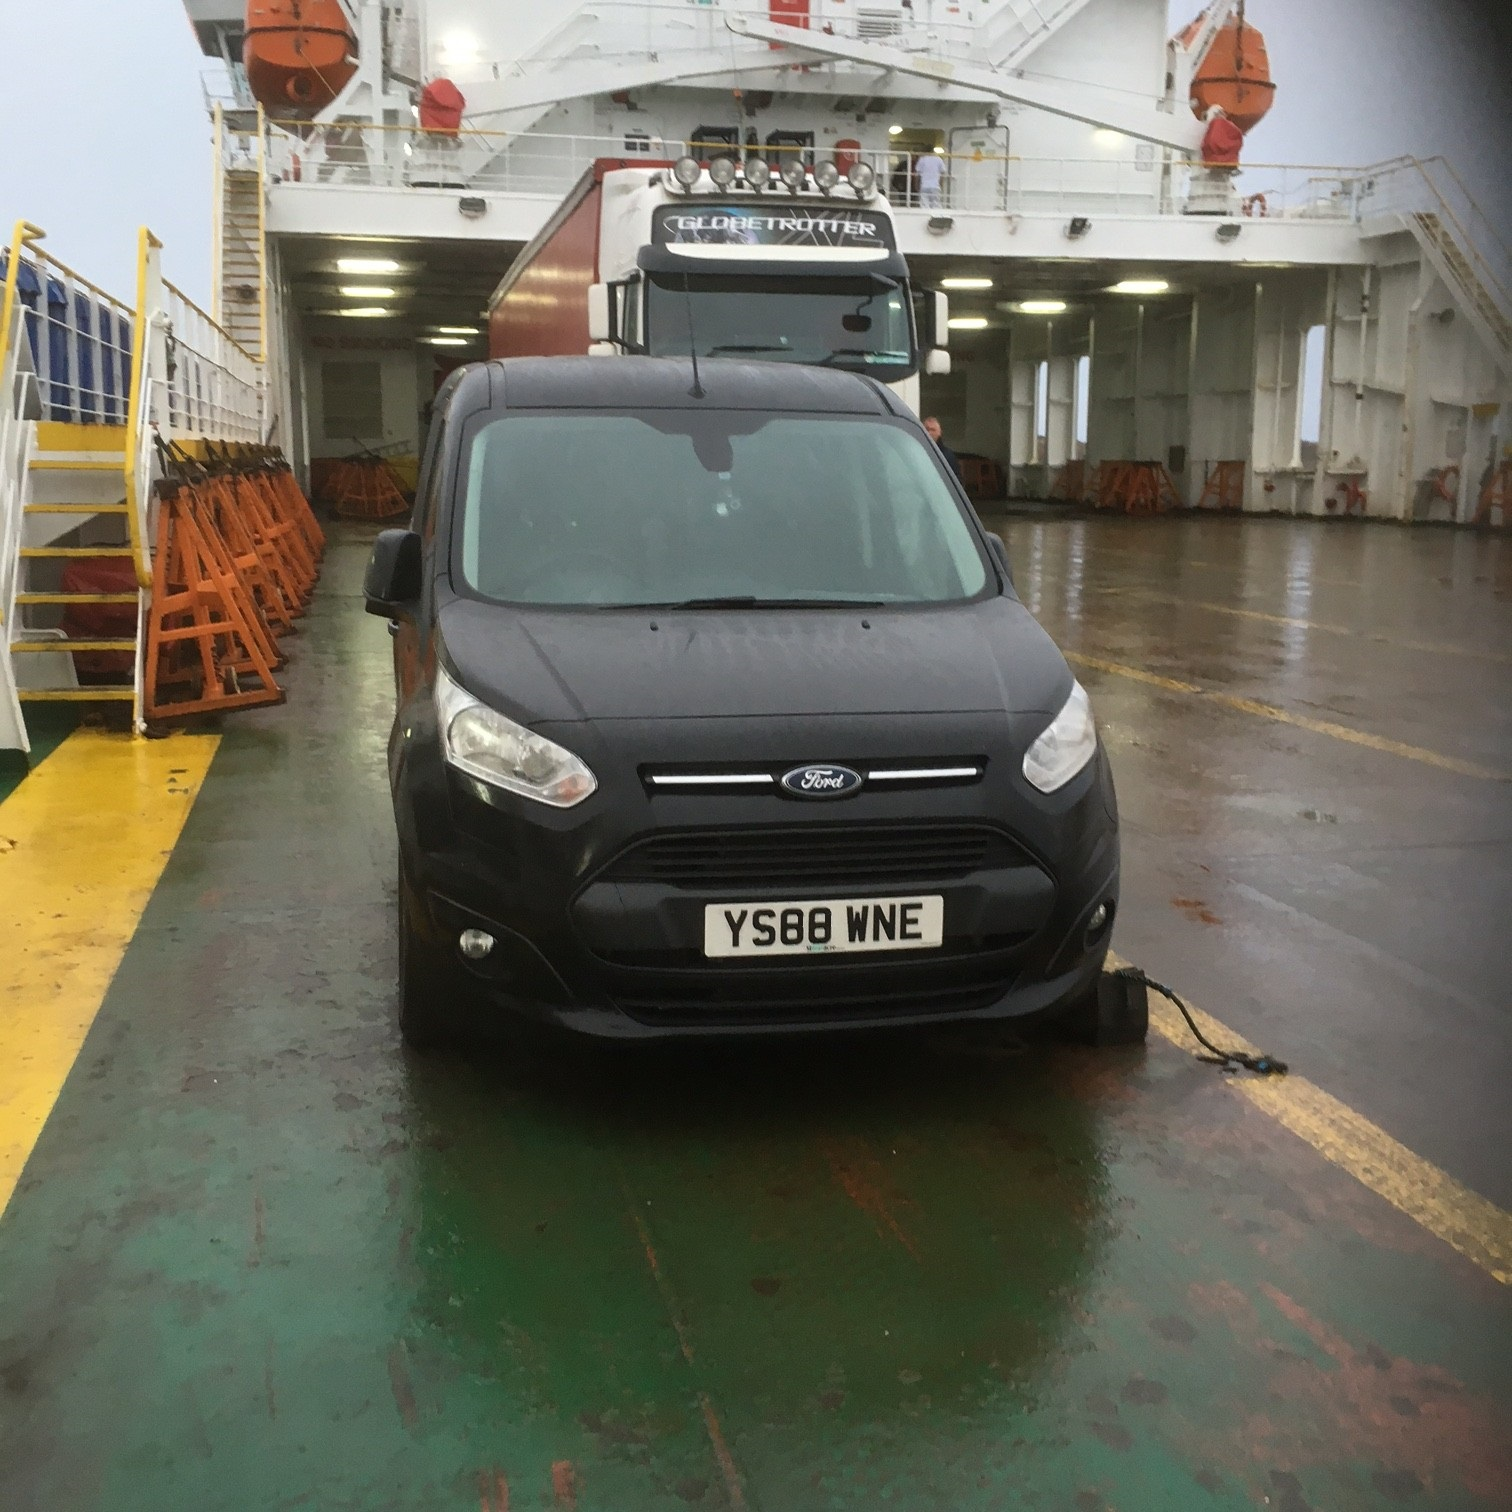 Ferry Crossing to Dublin